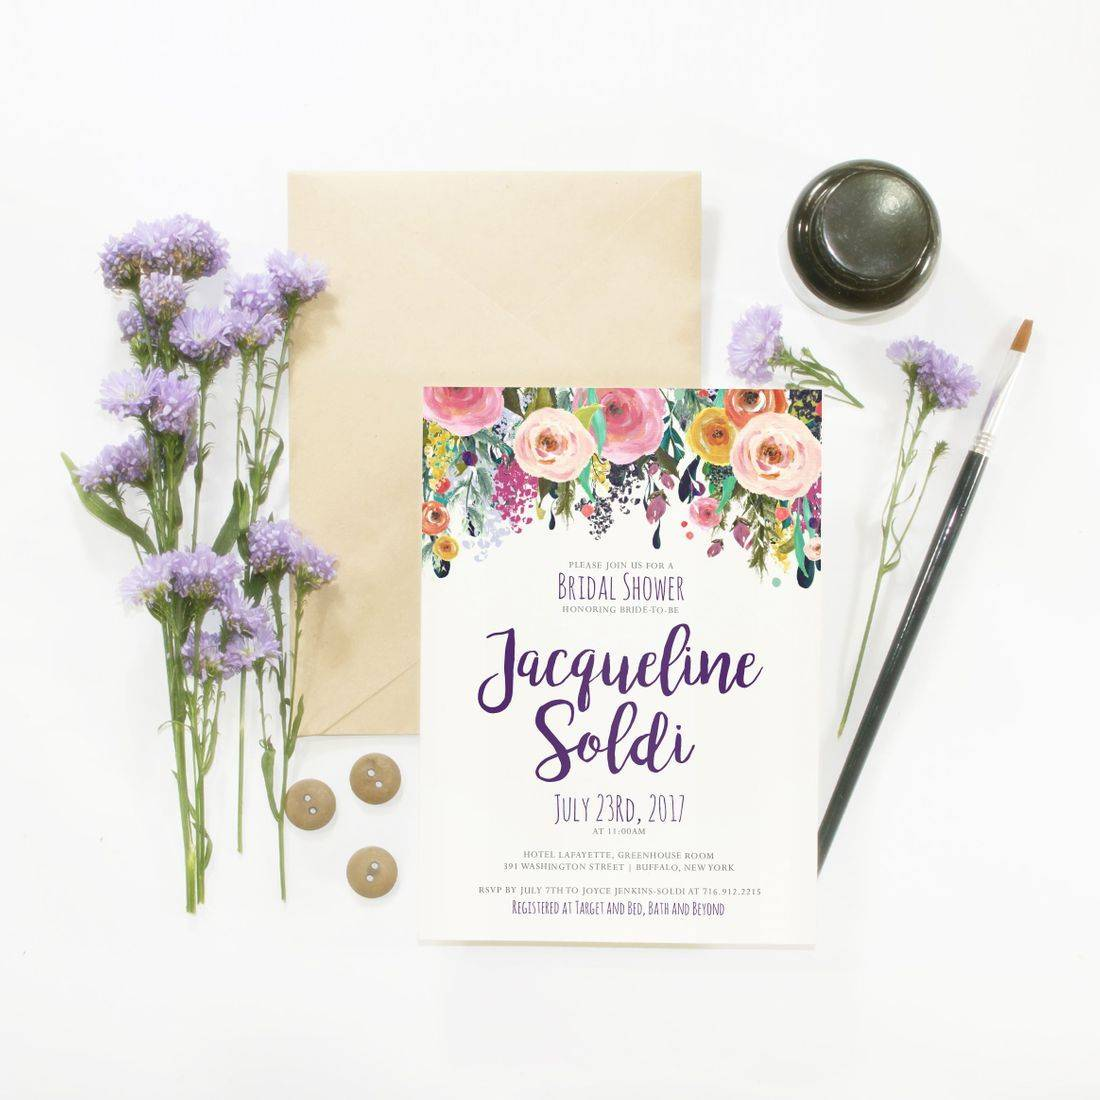 Colorful floral bridal shower invitation flat lay